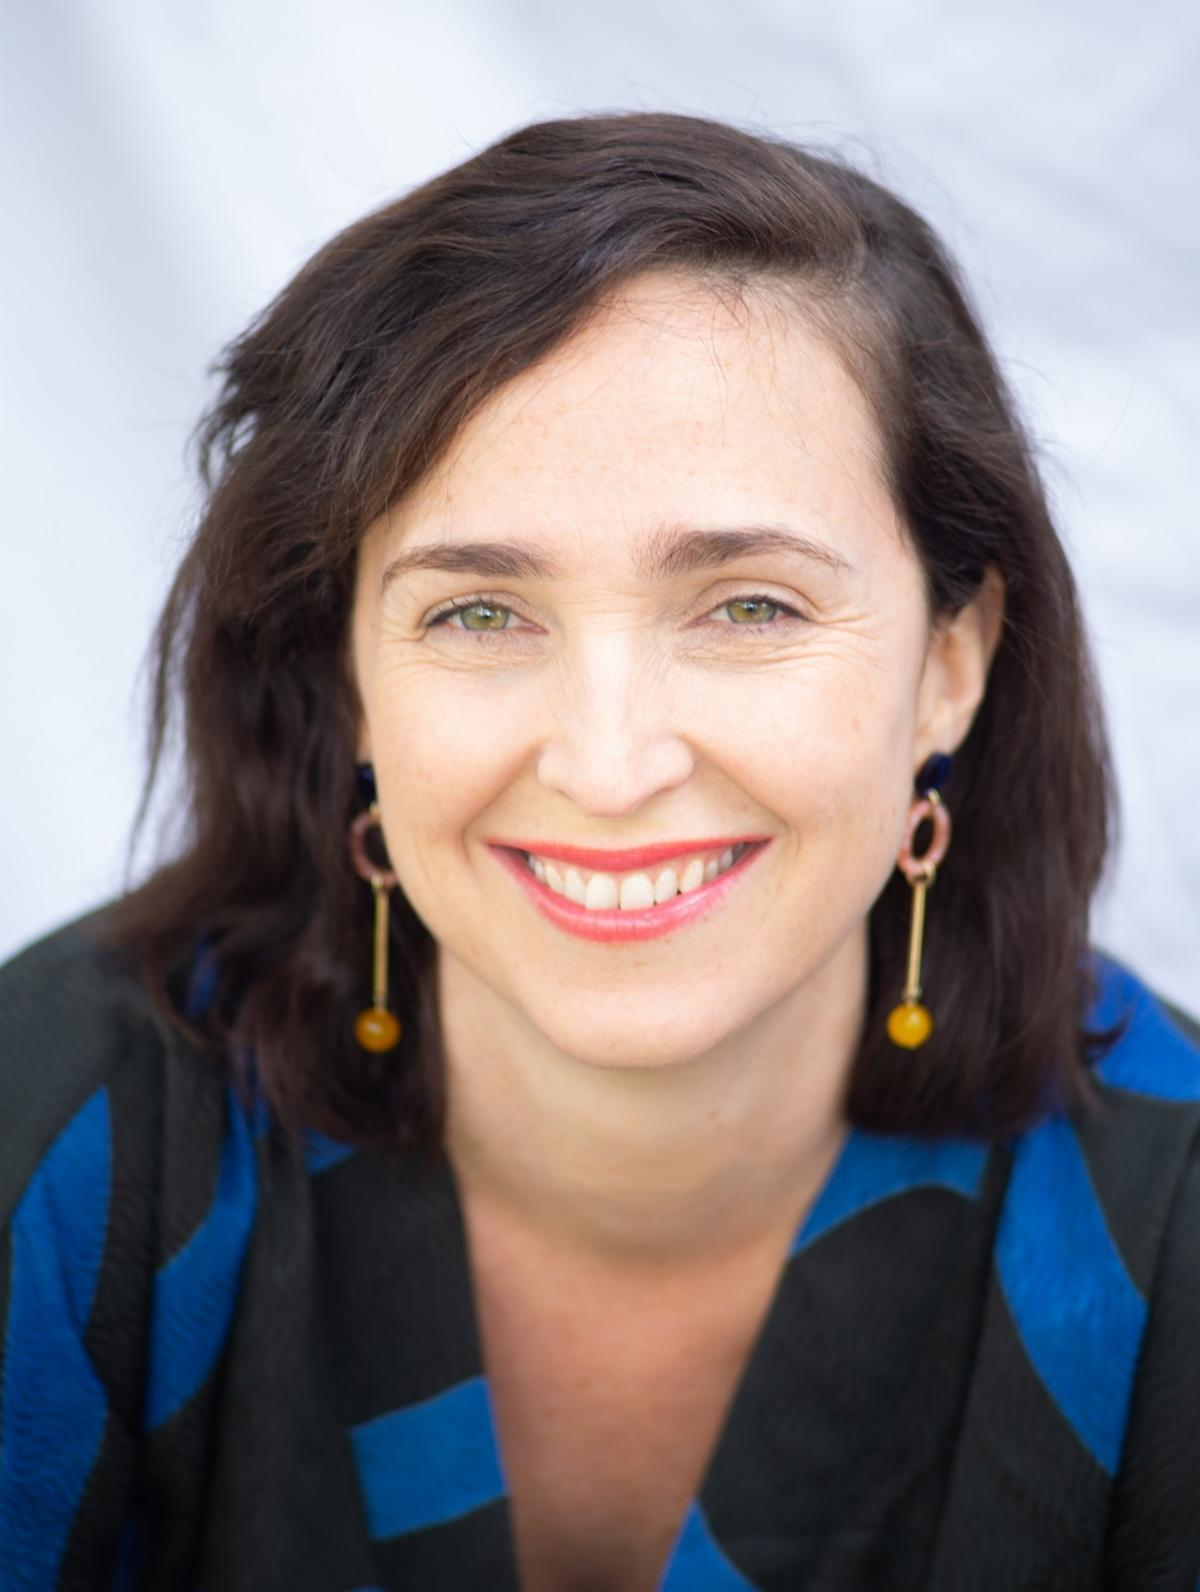 Woman smiling in blue and black blouse. Gold earrings. Colleen Houston.